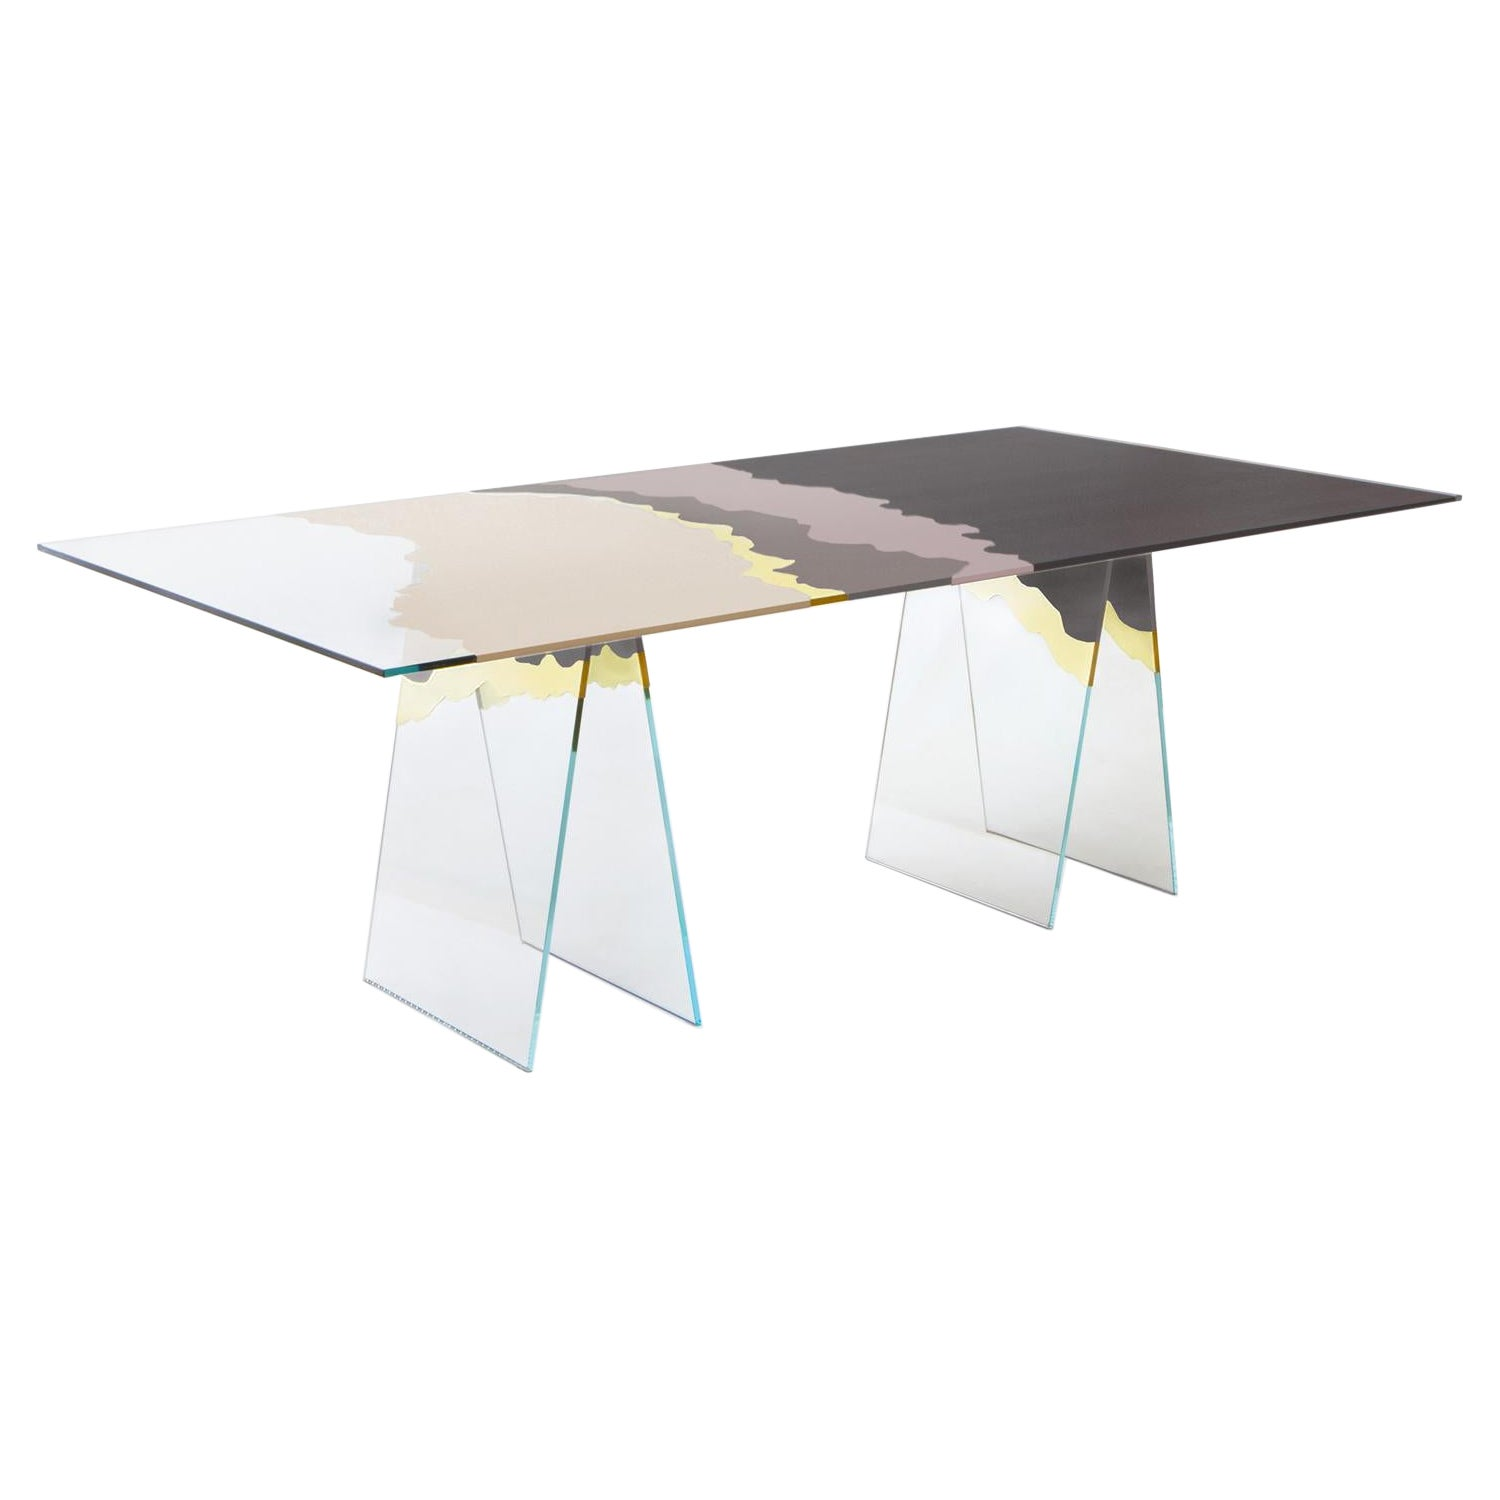 21st Century Table de Milàn Table in Ultra-White Glass and Sand Color Laminates